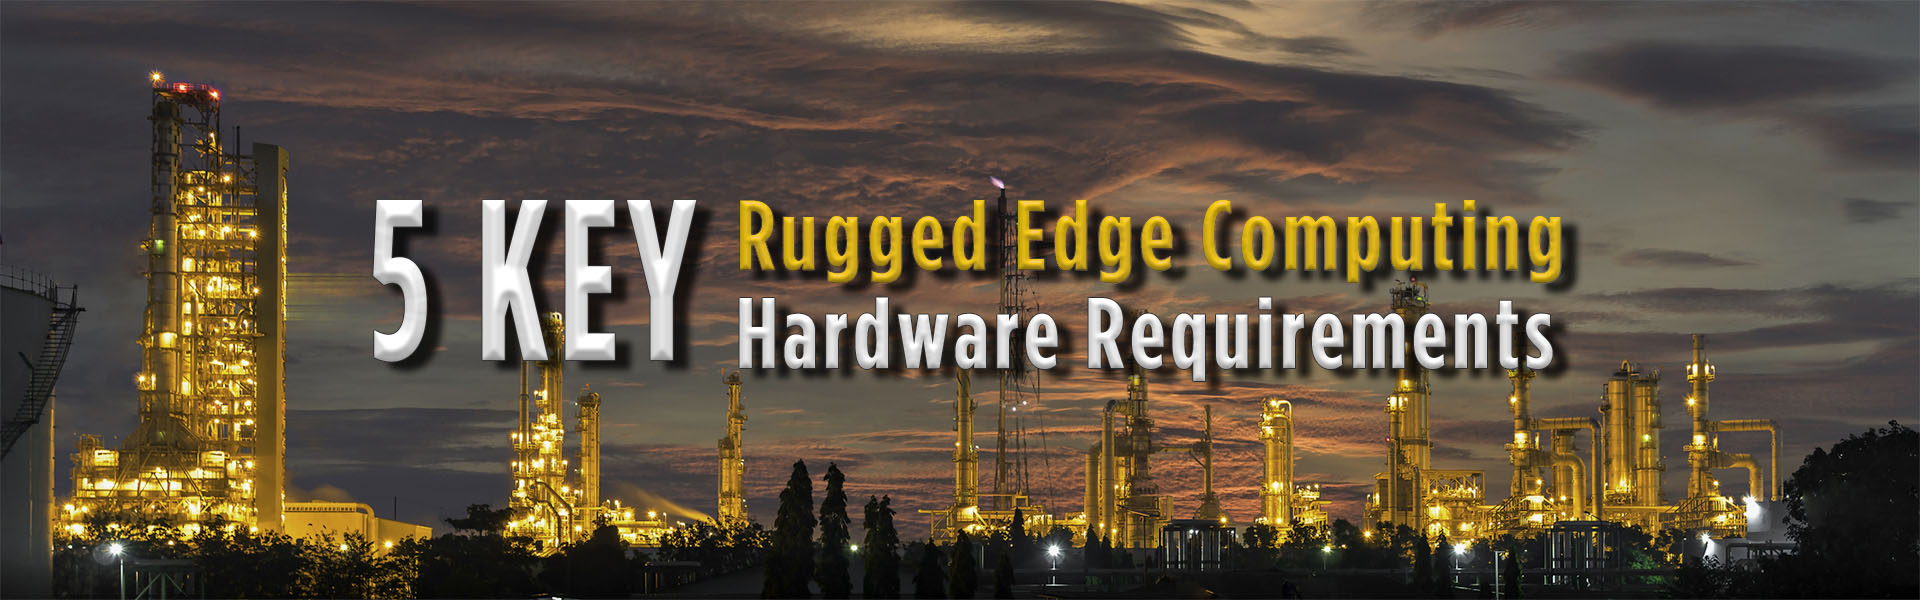 5 must have hardware requirements for rugged edge computing